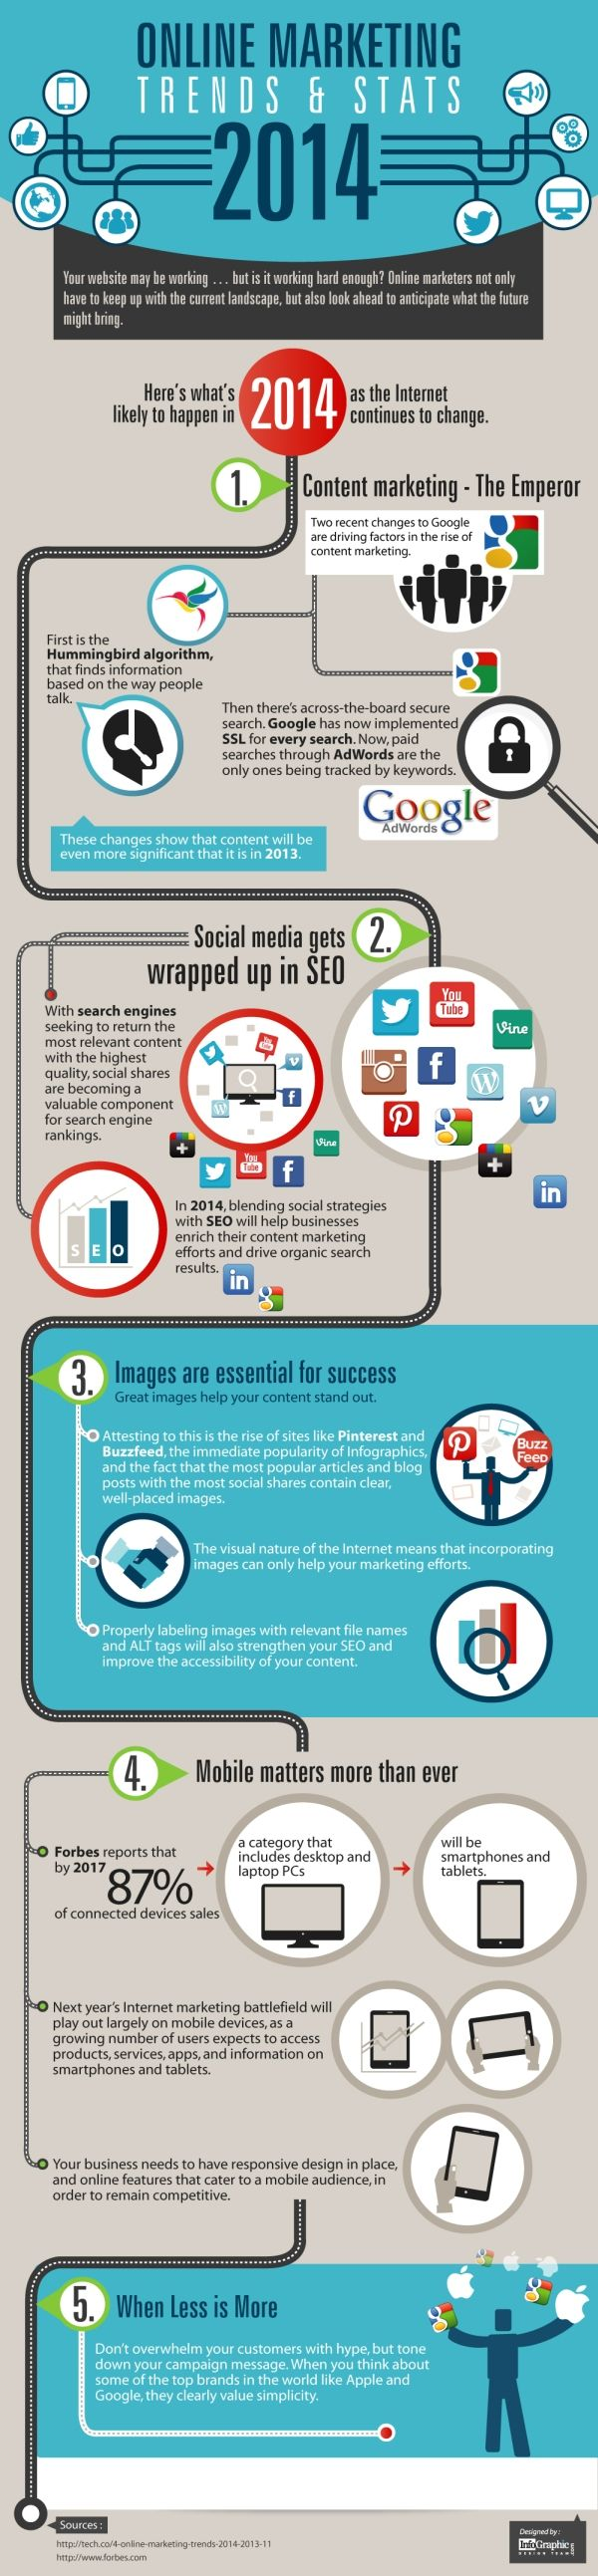 Online #Marketing Trends and Stats. #Infographic